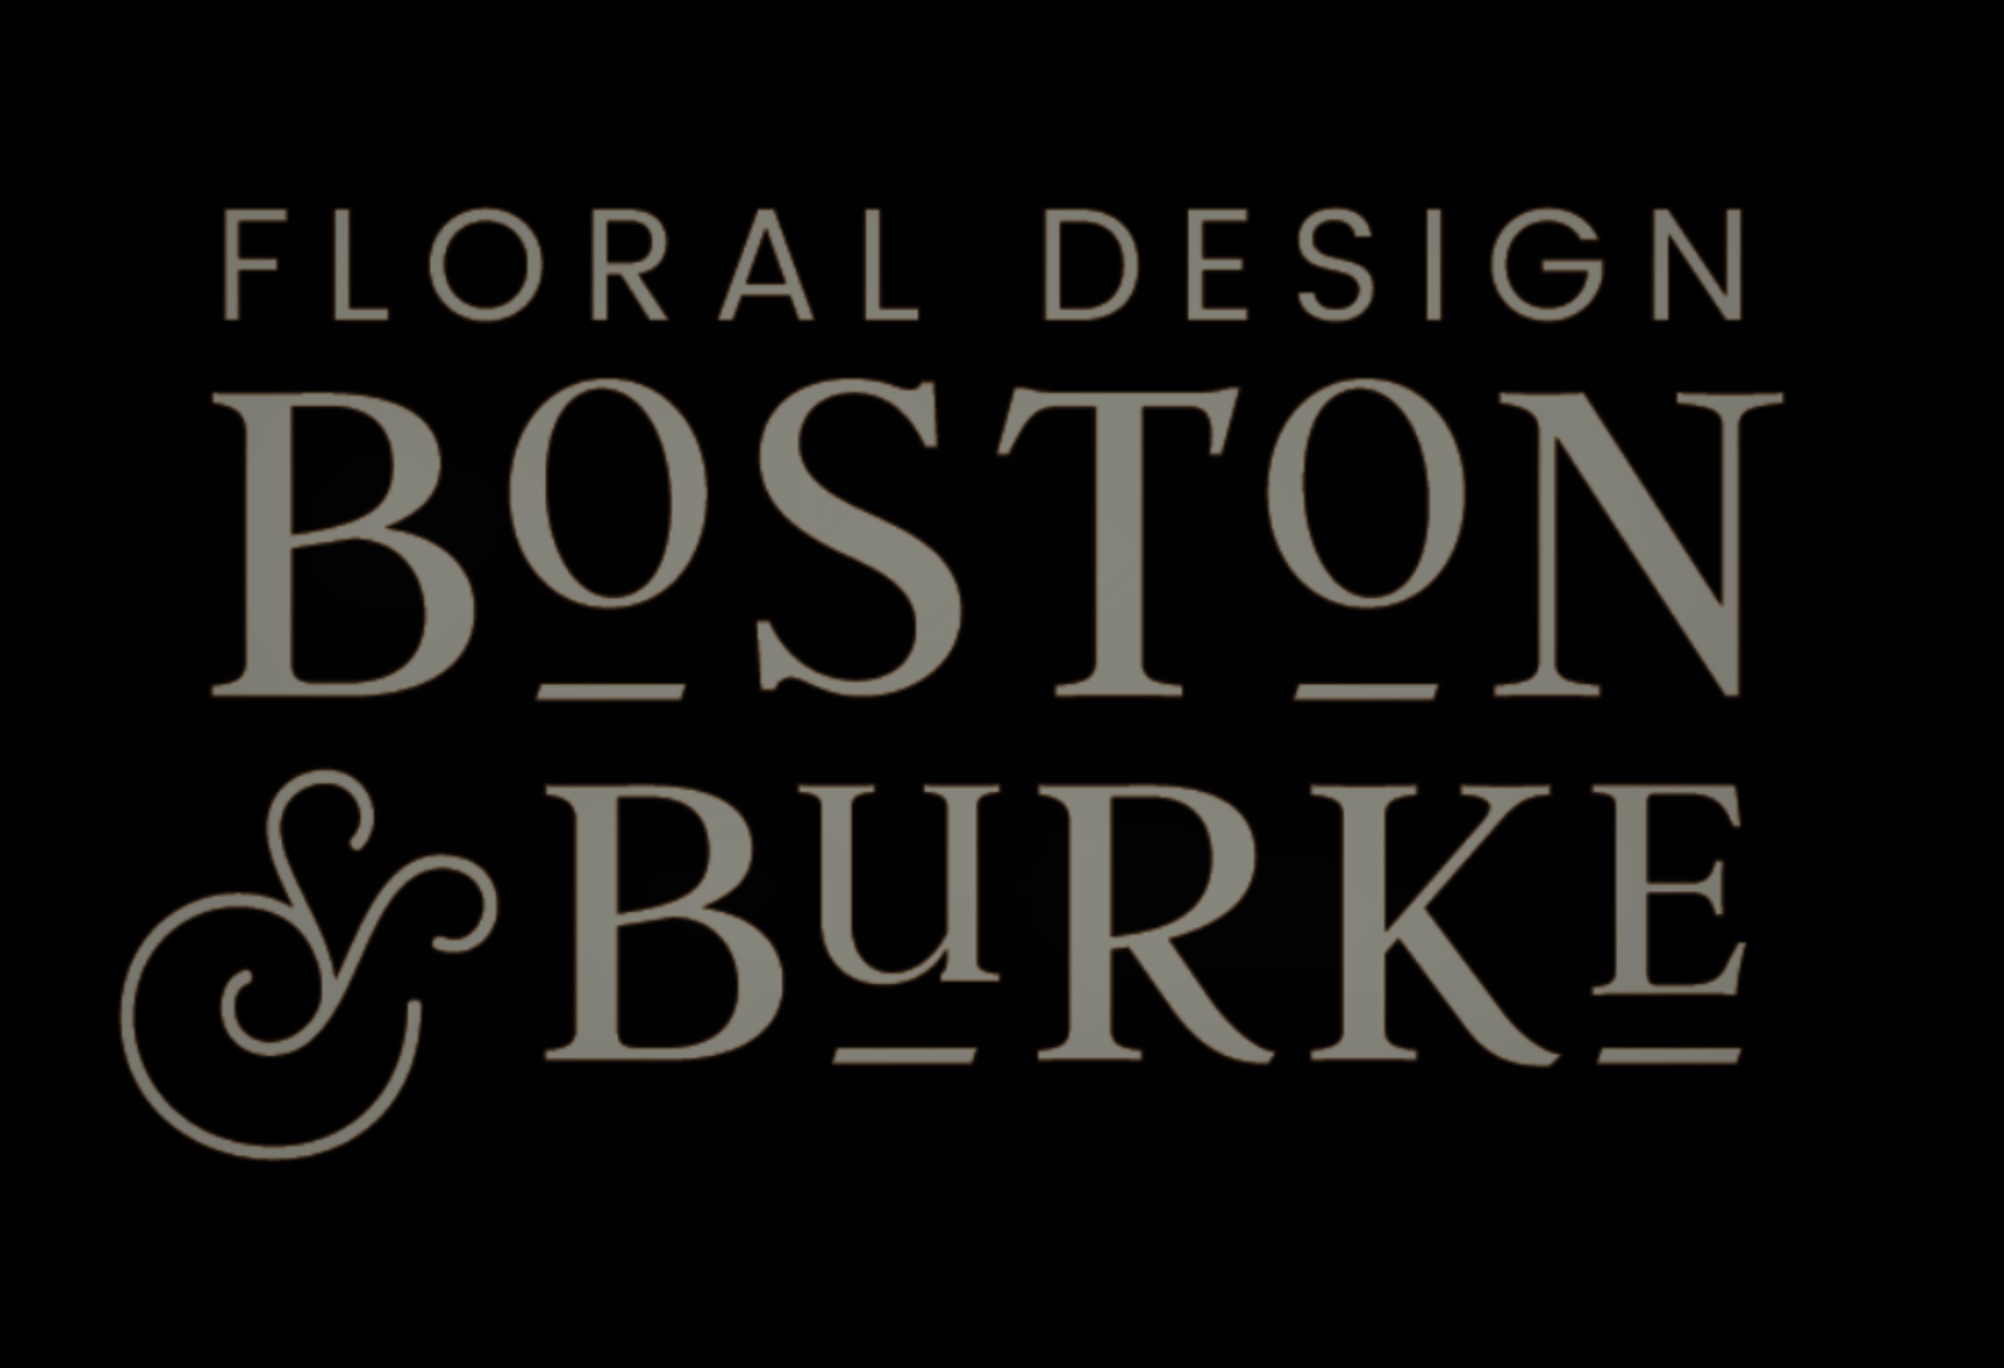 Boston & Burke Floral Design